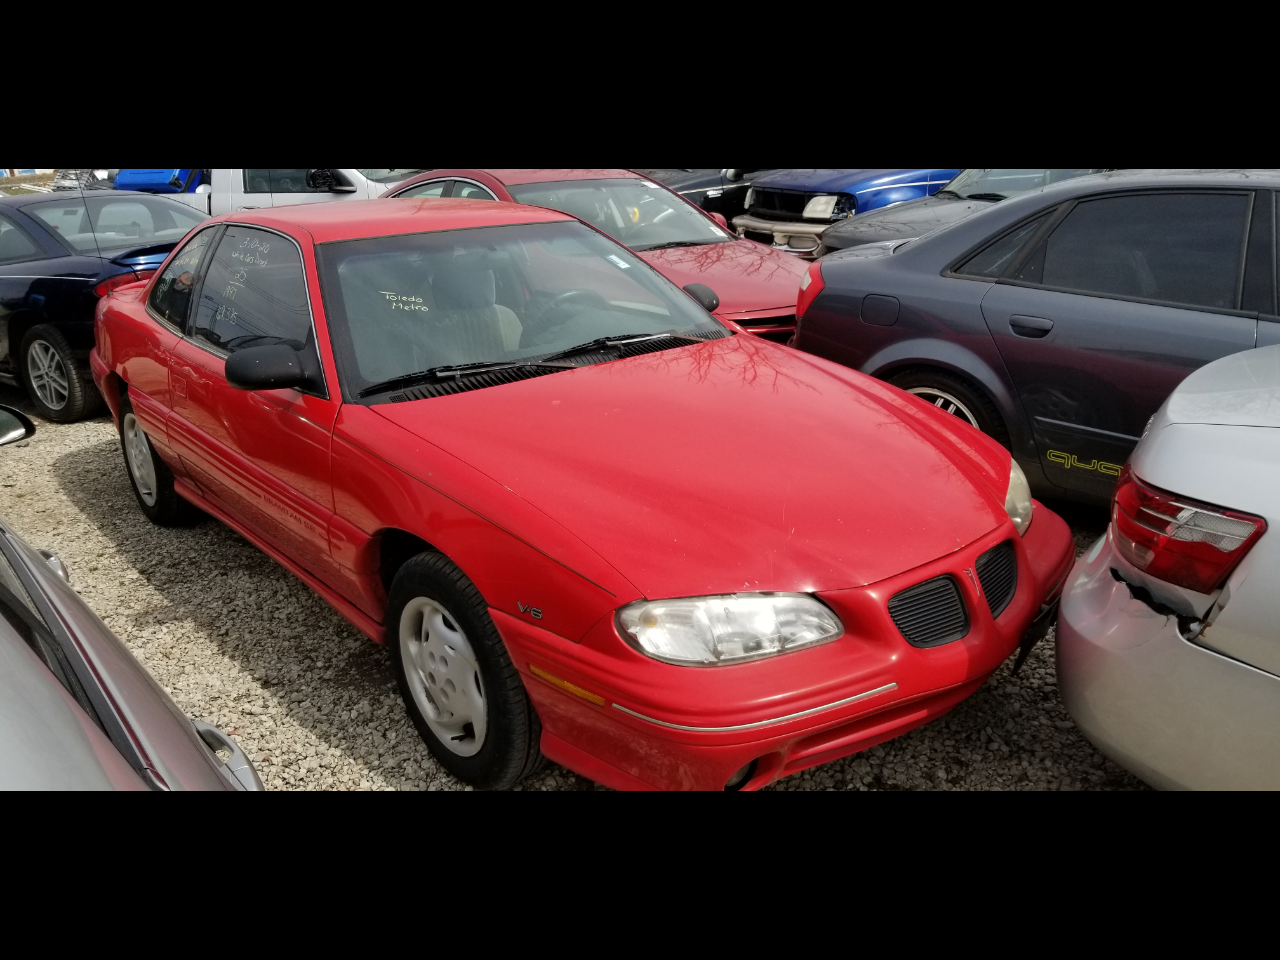 Pontiac Grand Am SE coupe 1997